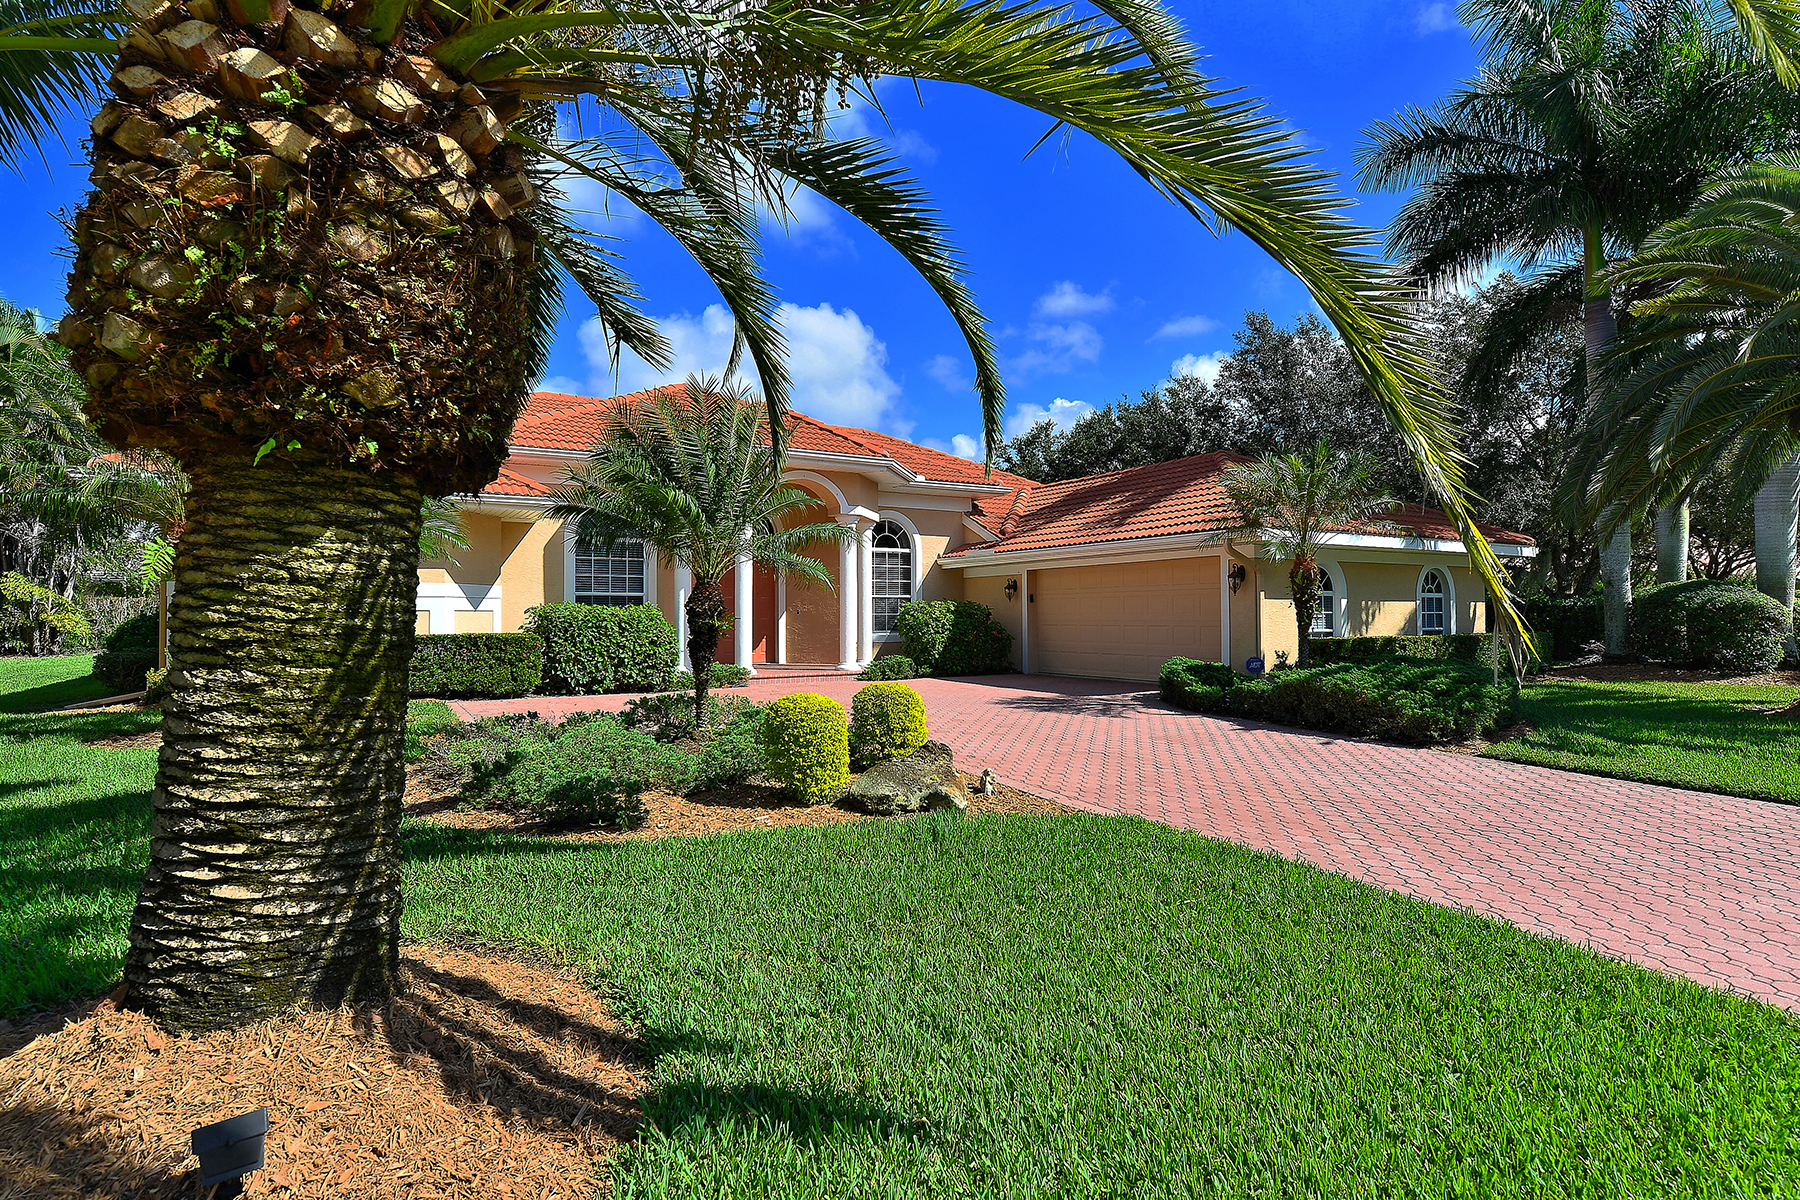 Casa Unifamiliar por un Venta en TURTLE ROCK 4797 Sweetmeadow Cir Sarasota, Florida 34238 Estados Unidos